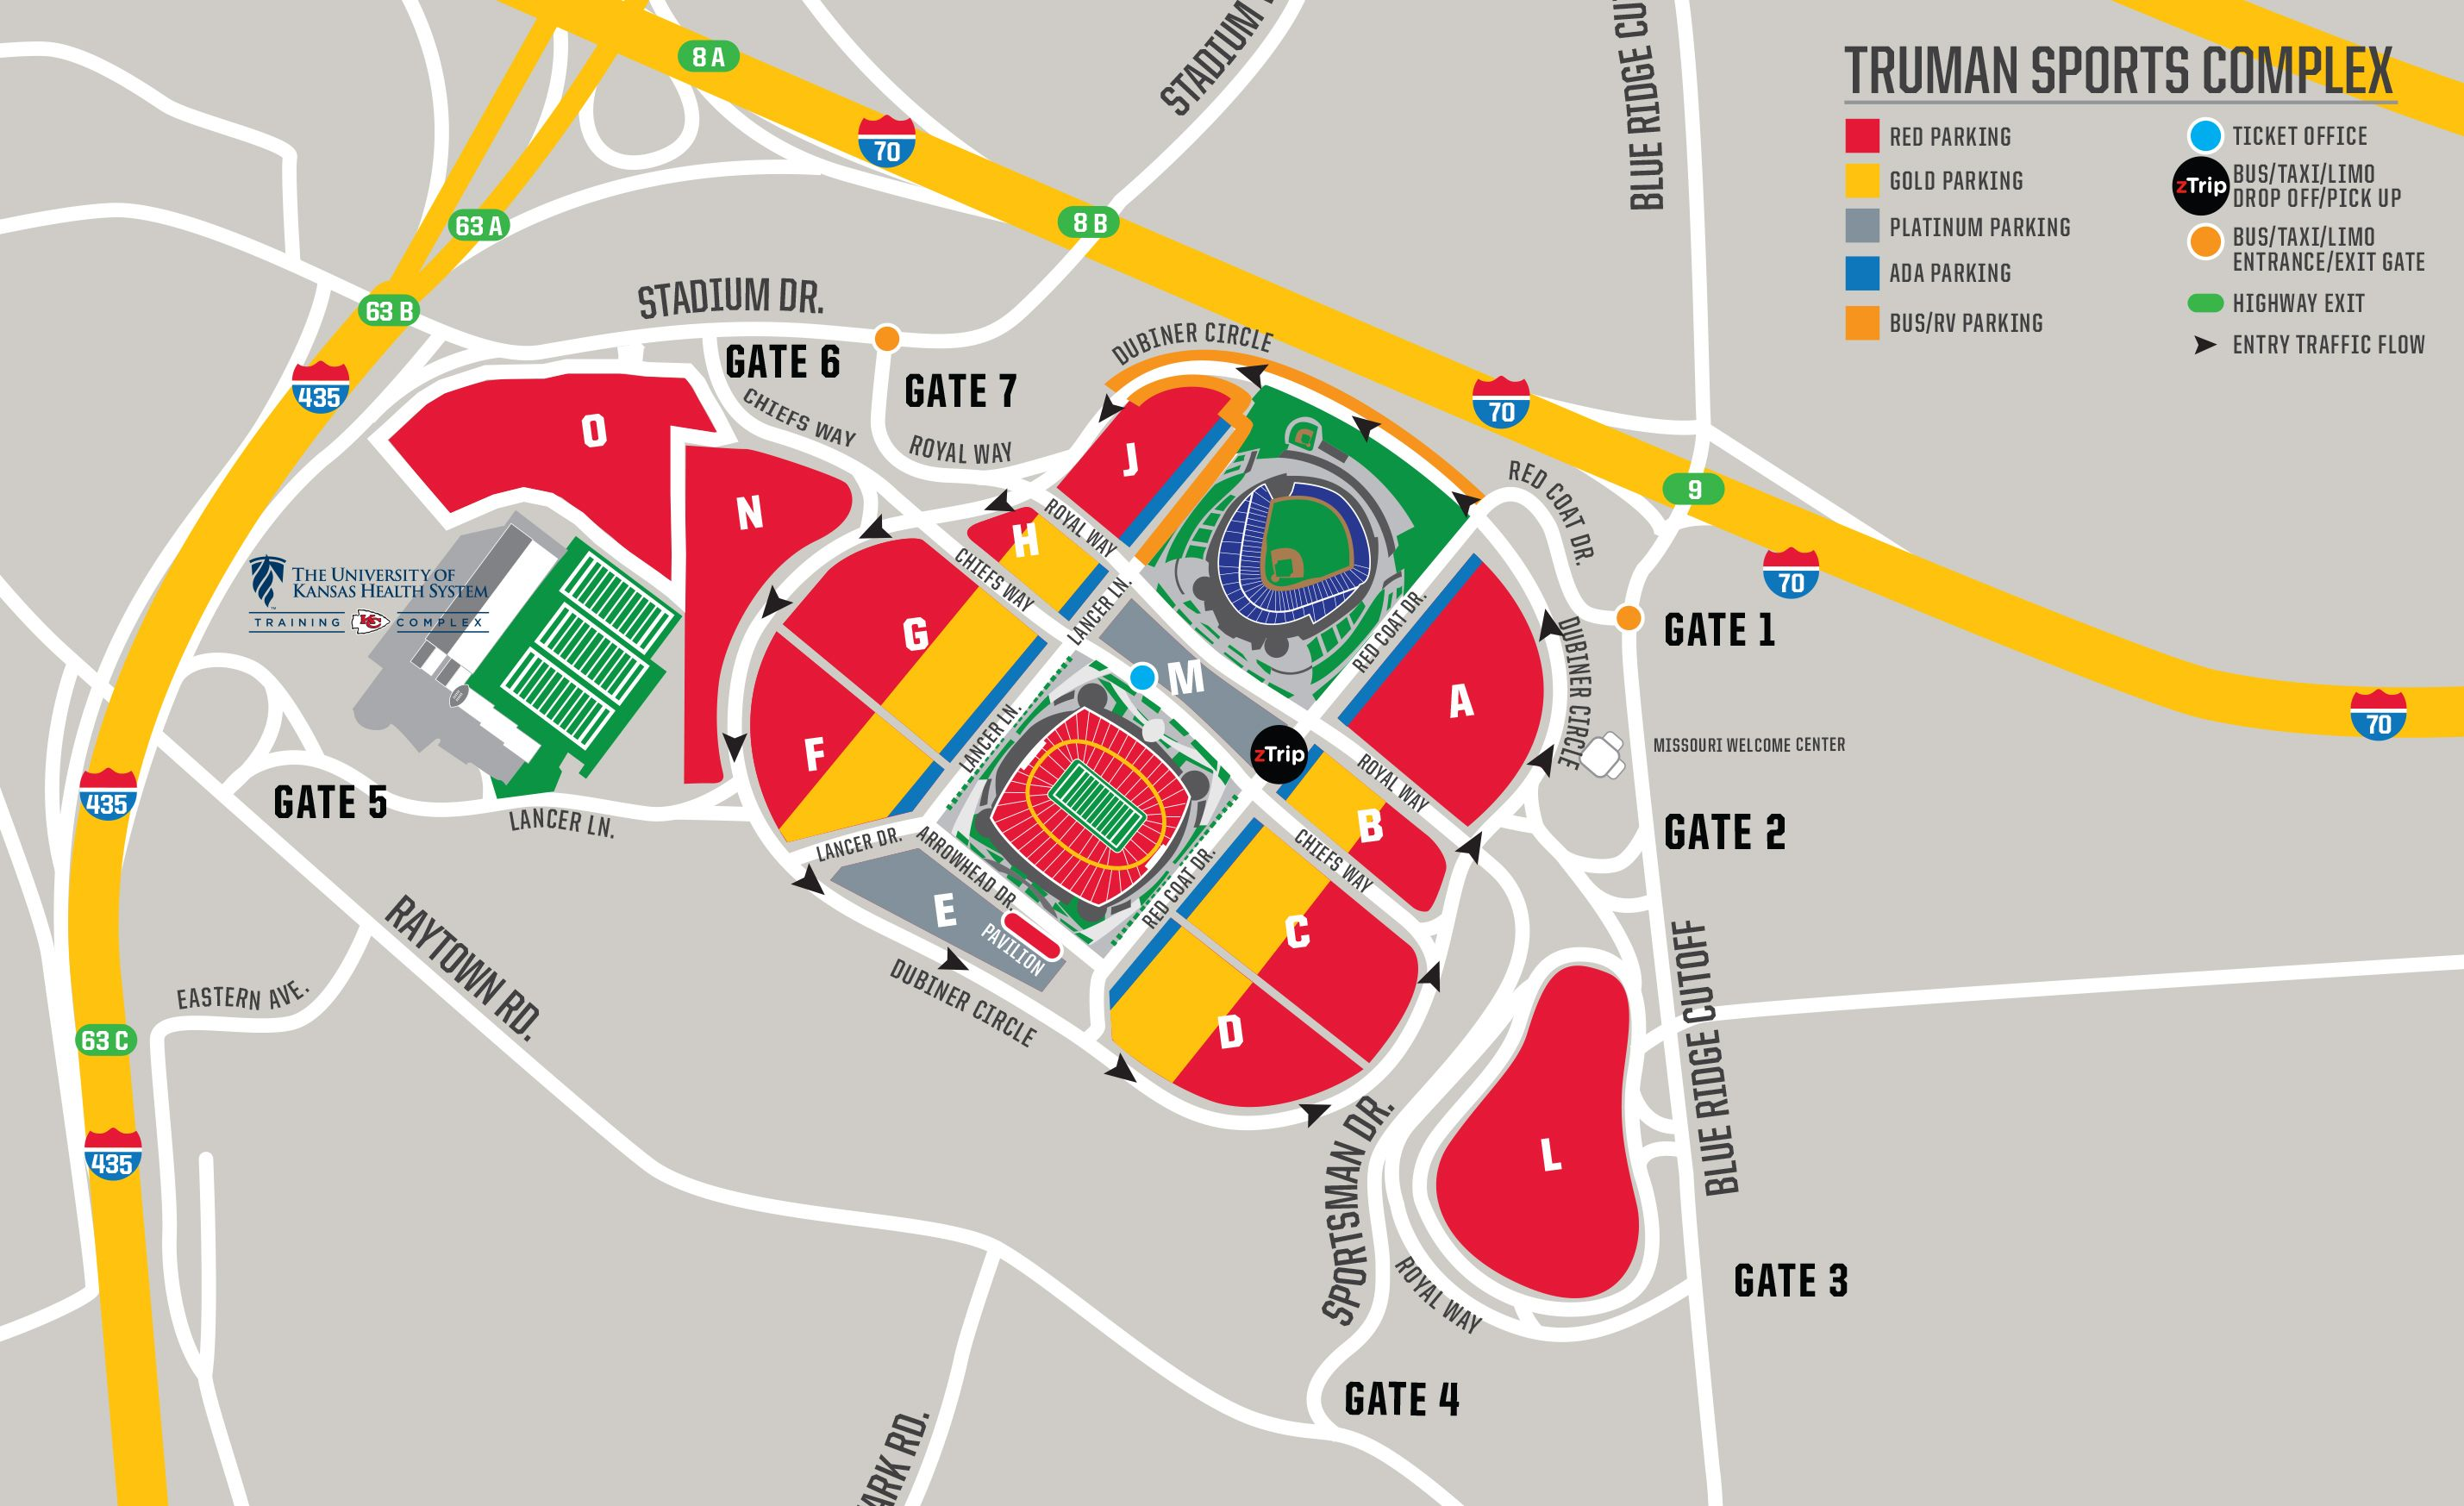 2017---Truman-Sports-Complex-Parking-Map---Zoom